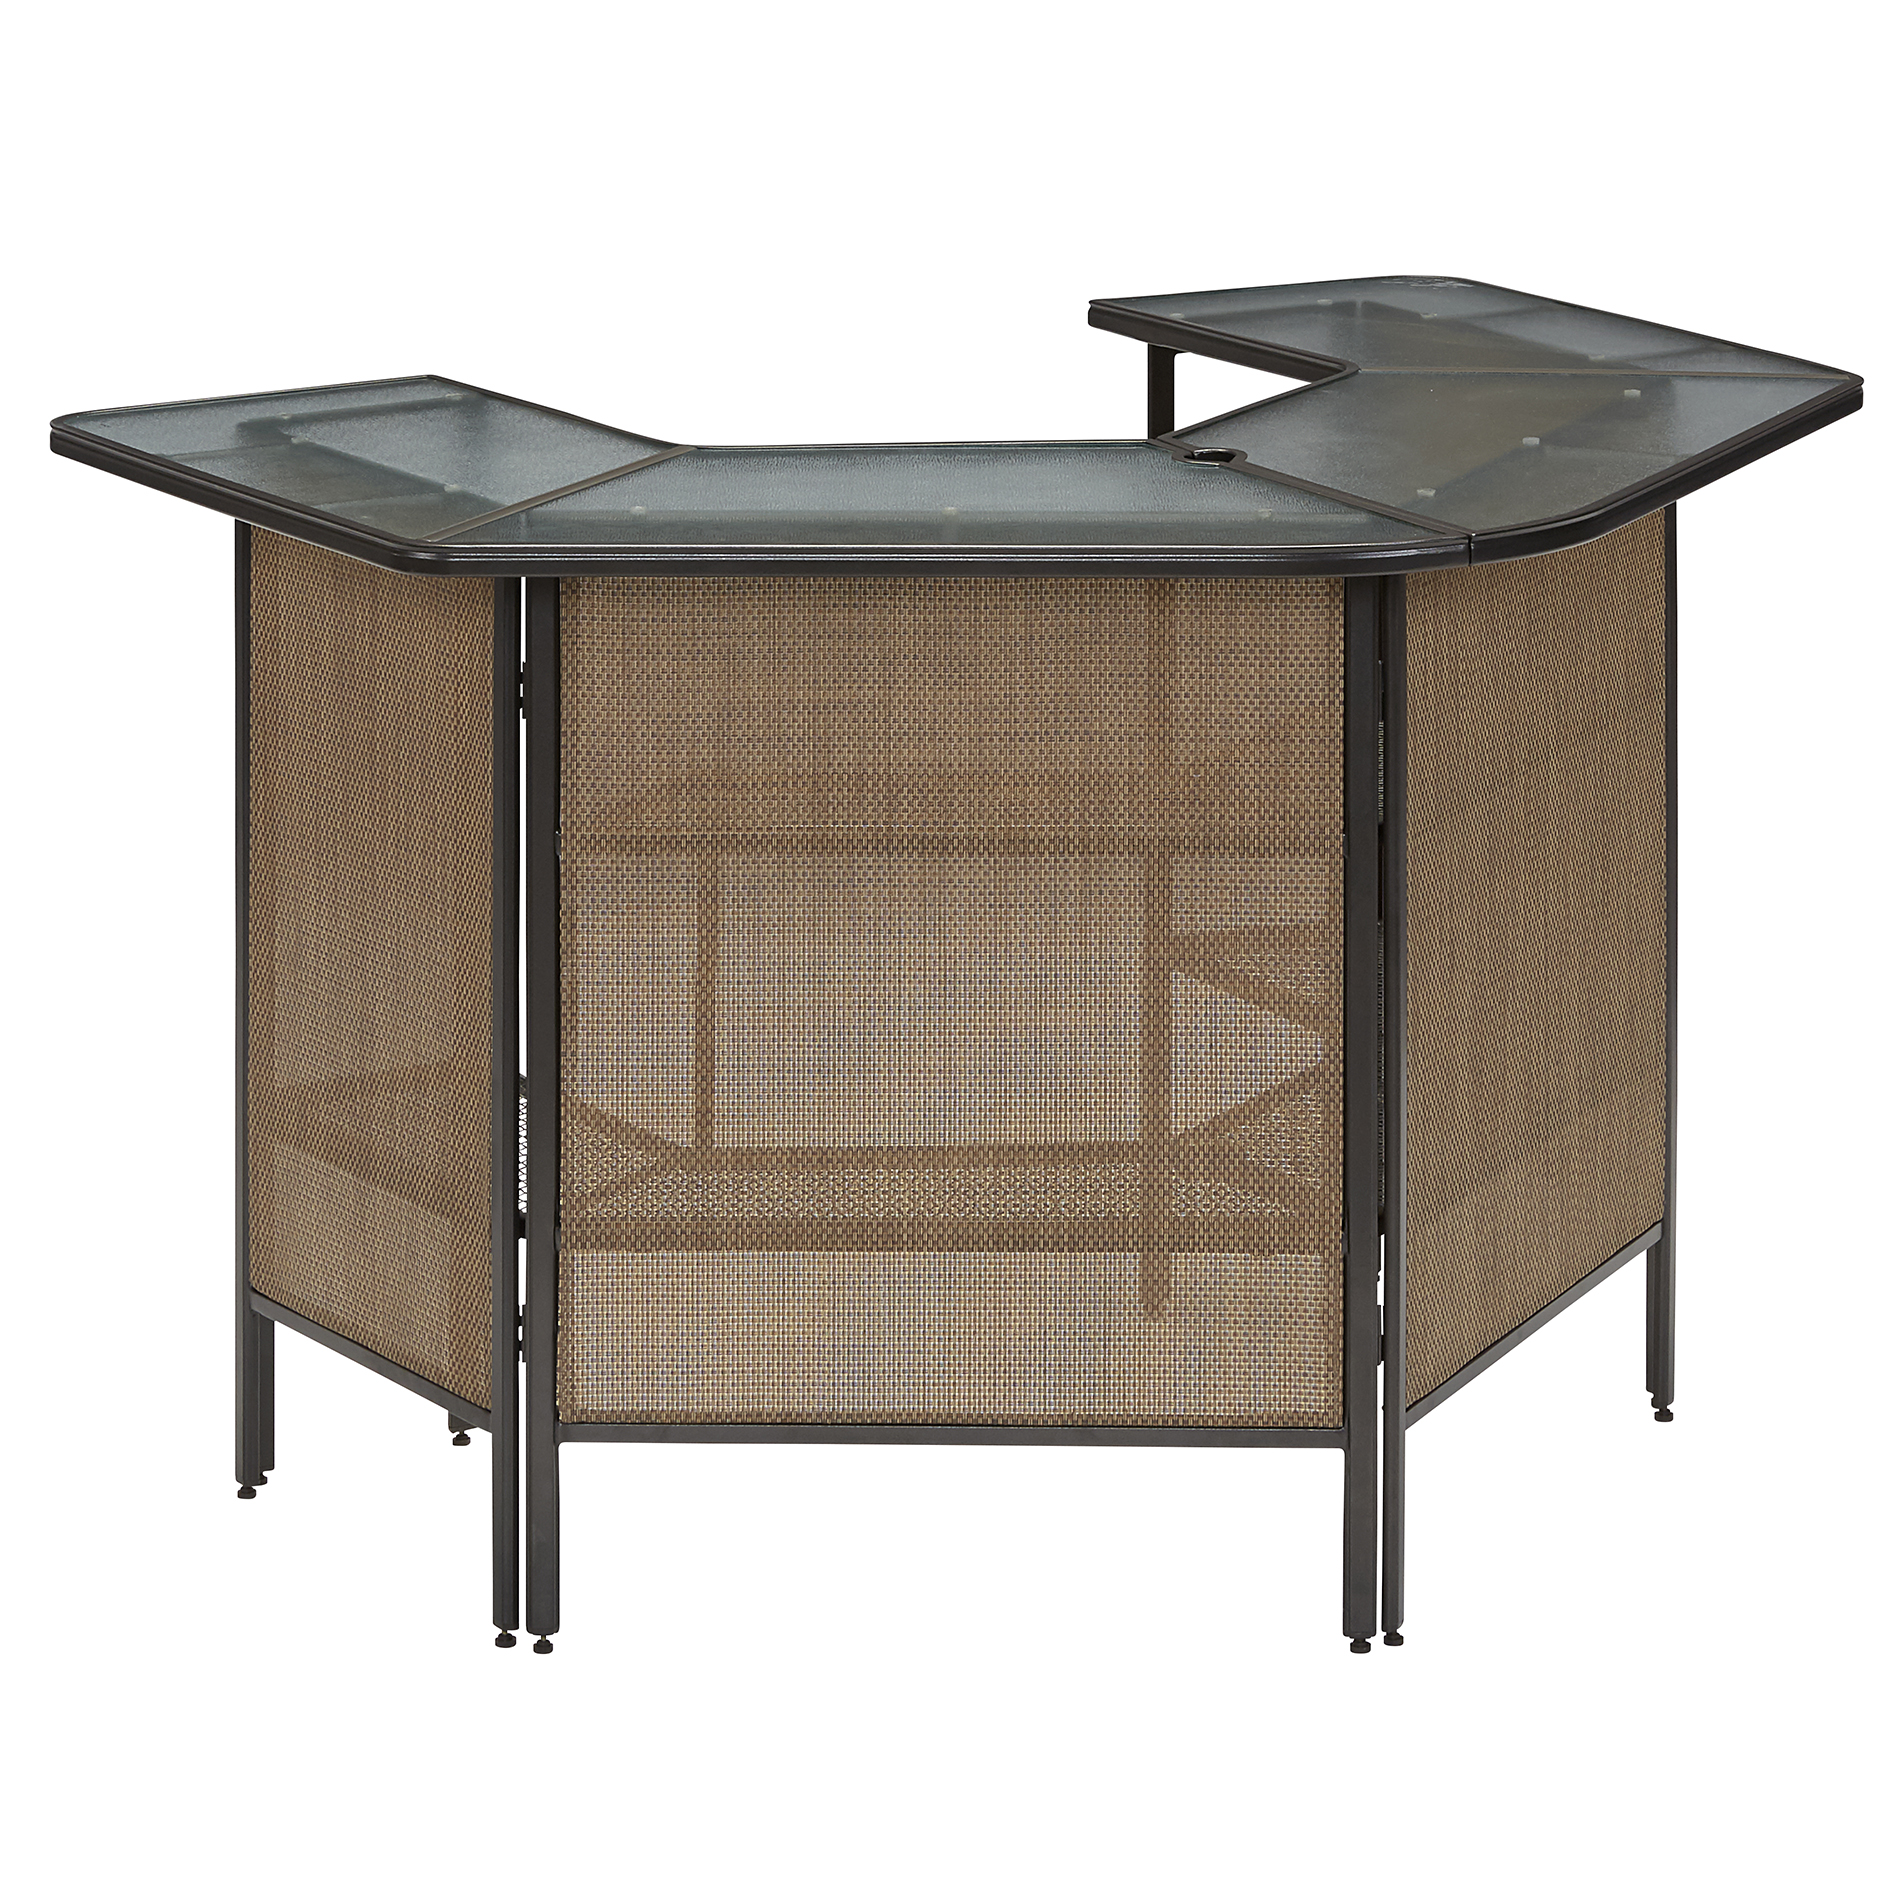 Essential Garden Fulton Bar Table Limited Availability